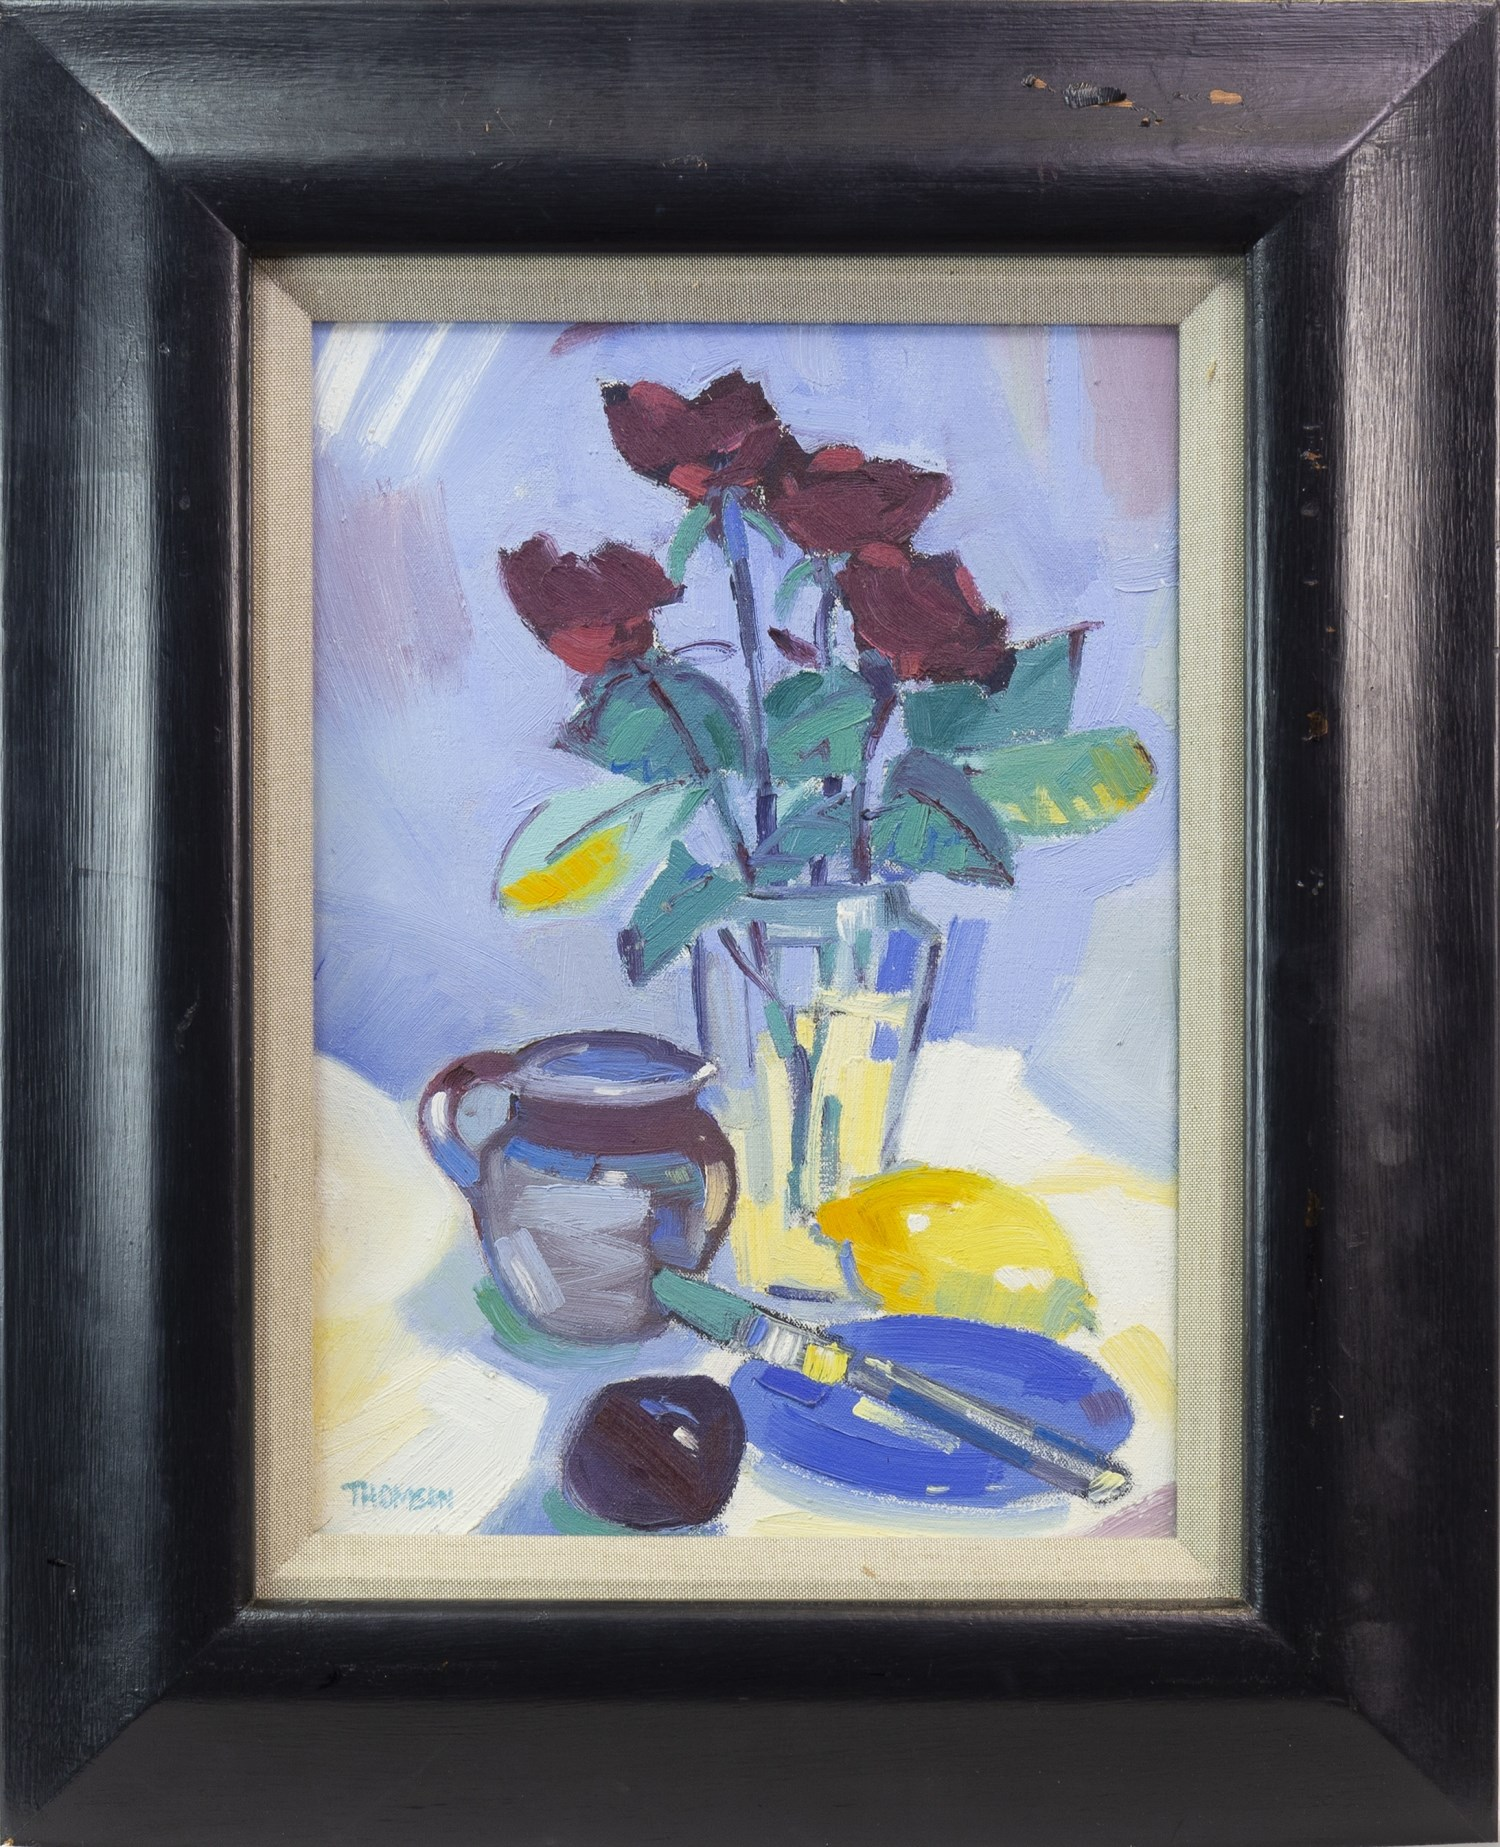 Lot 72 - STILL LIFE, AN OIL ON CANVAS BY MARION THOMSON